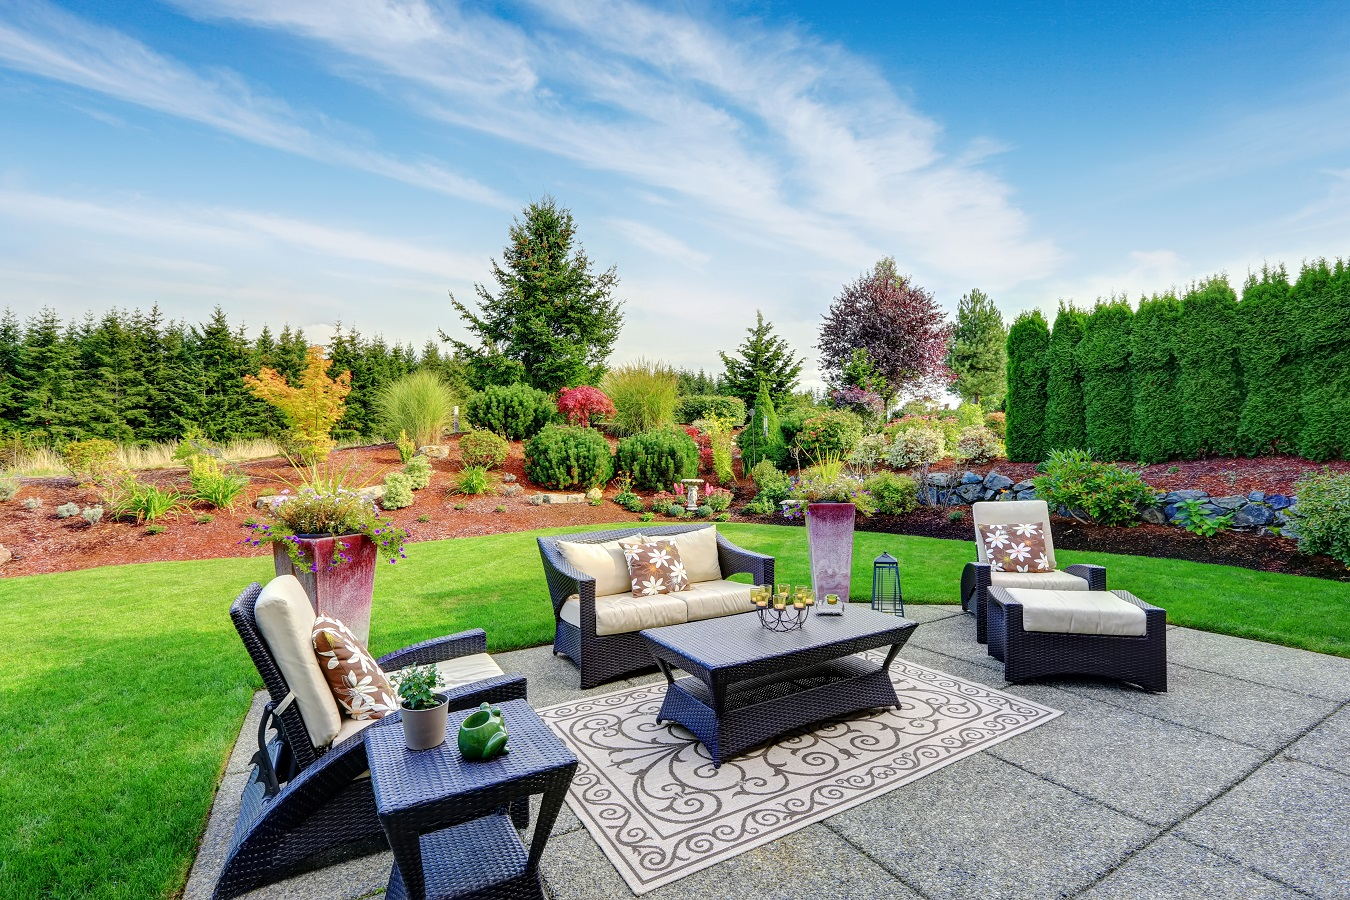 Integrate Your New Patio into the Landscape